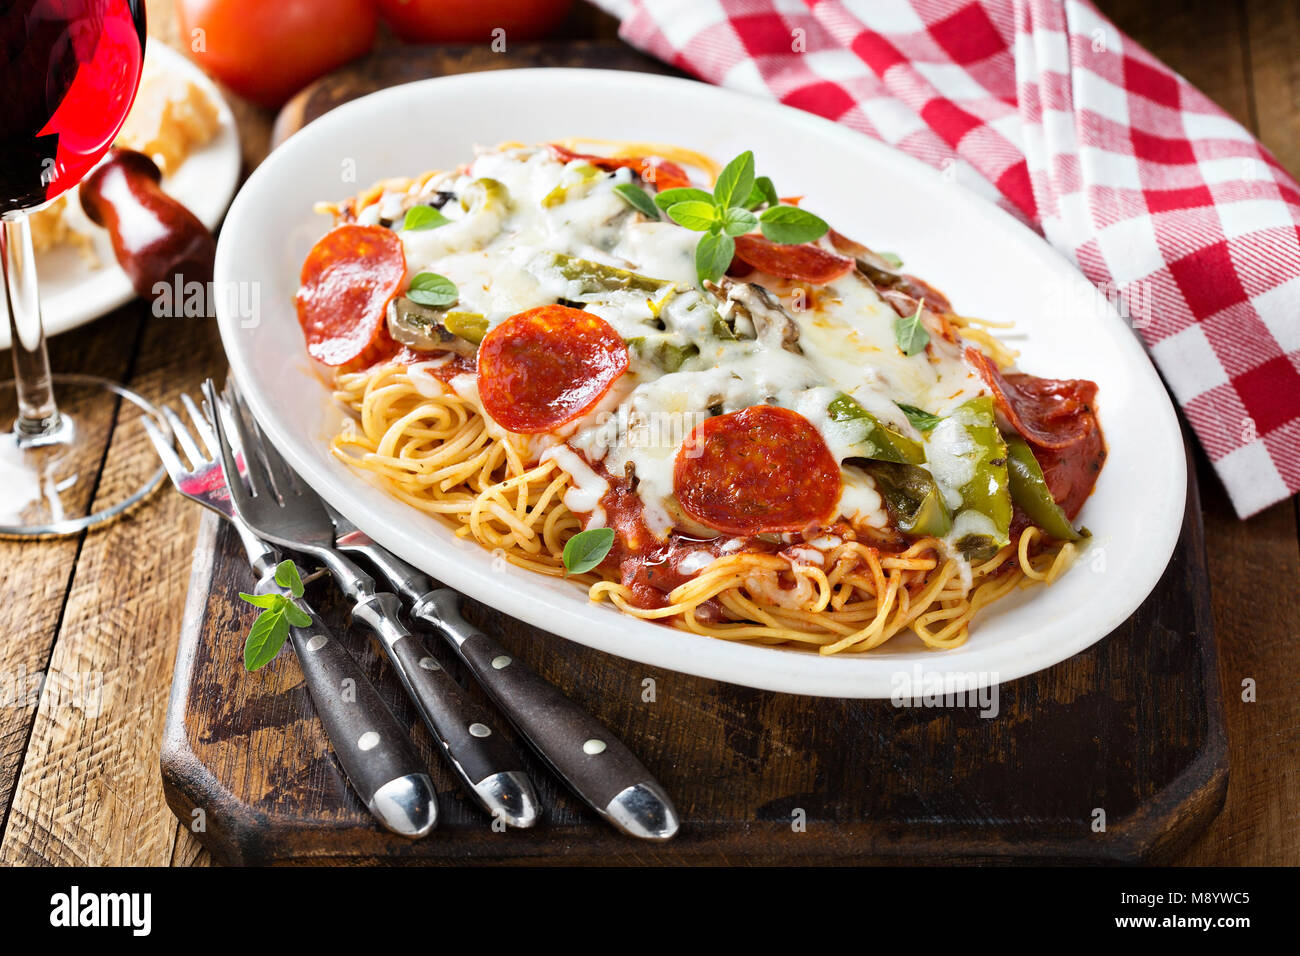 Baked pasta with cheese and pepperoni - Stock Image